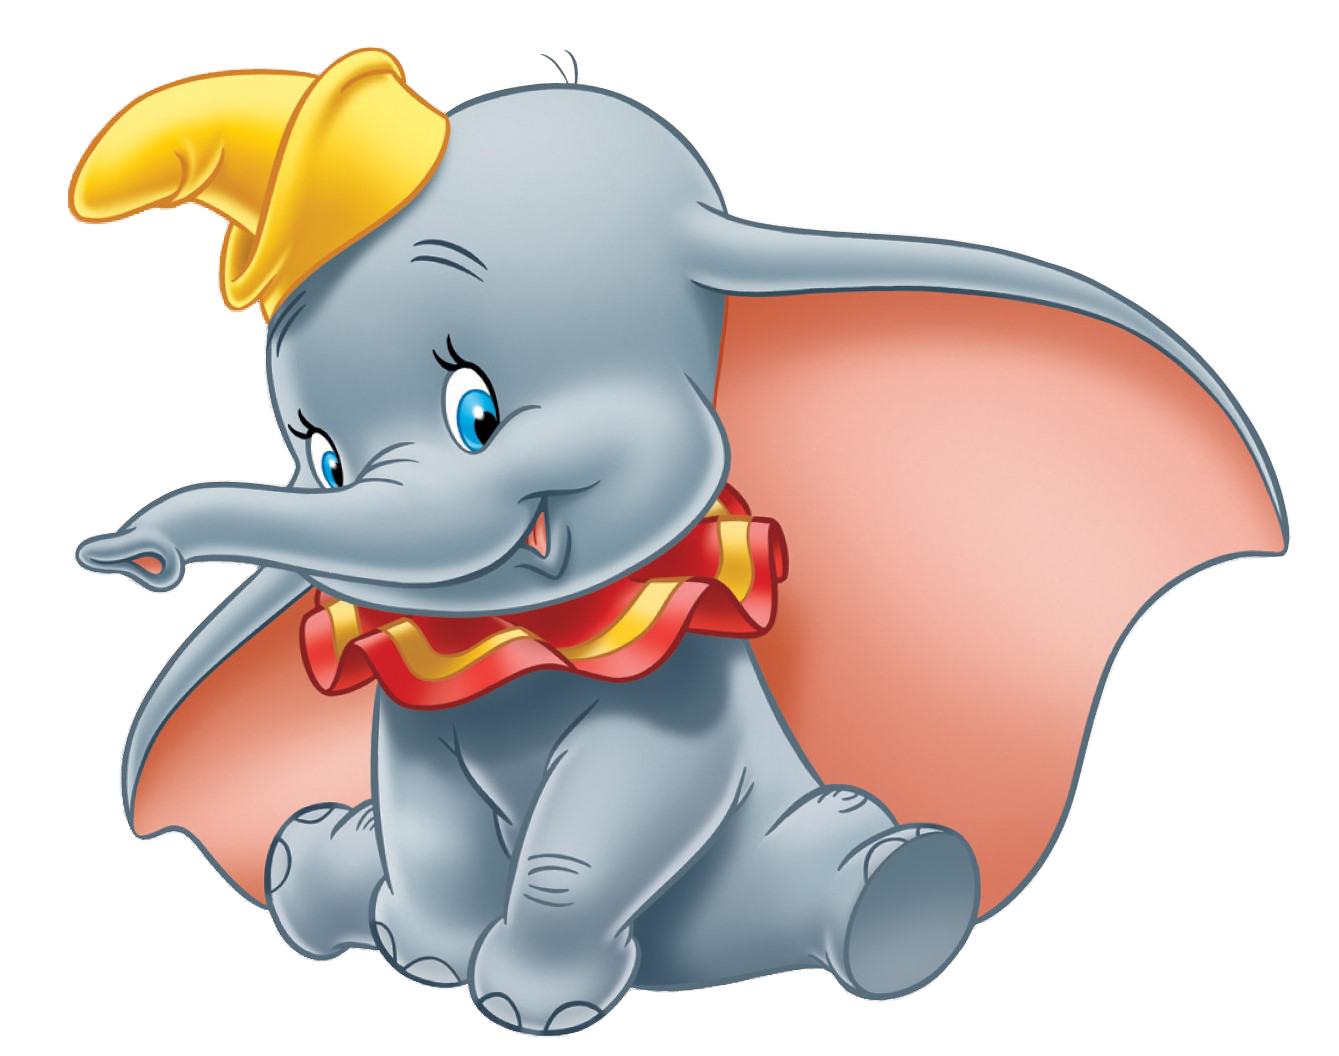 Disney character png. Transparent images all free